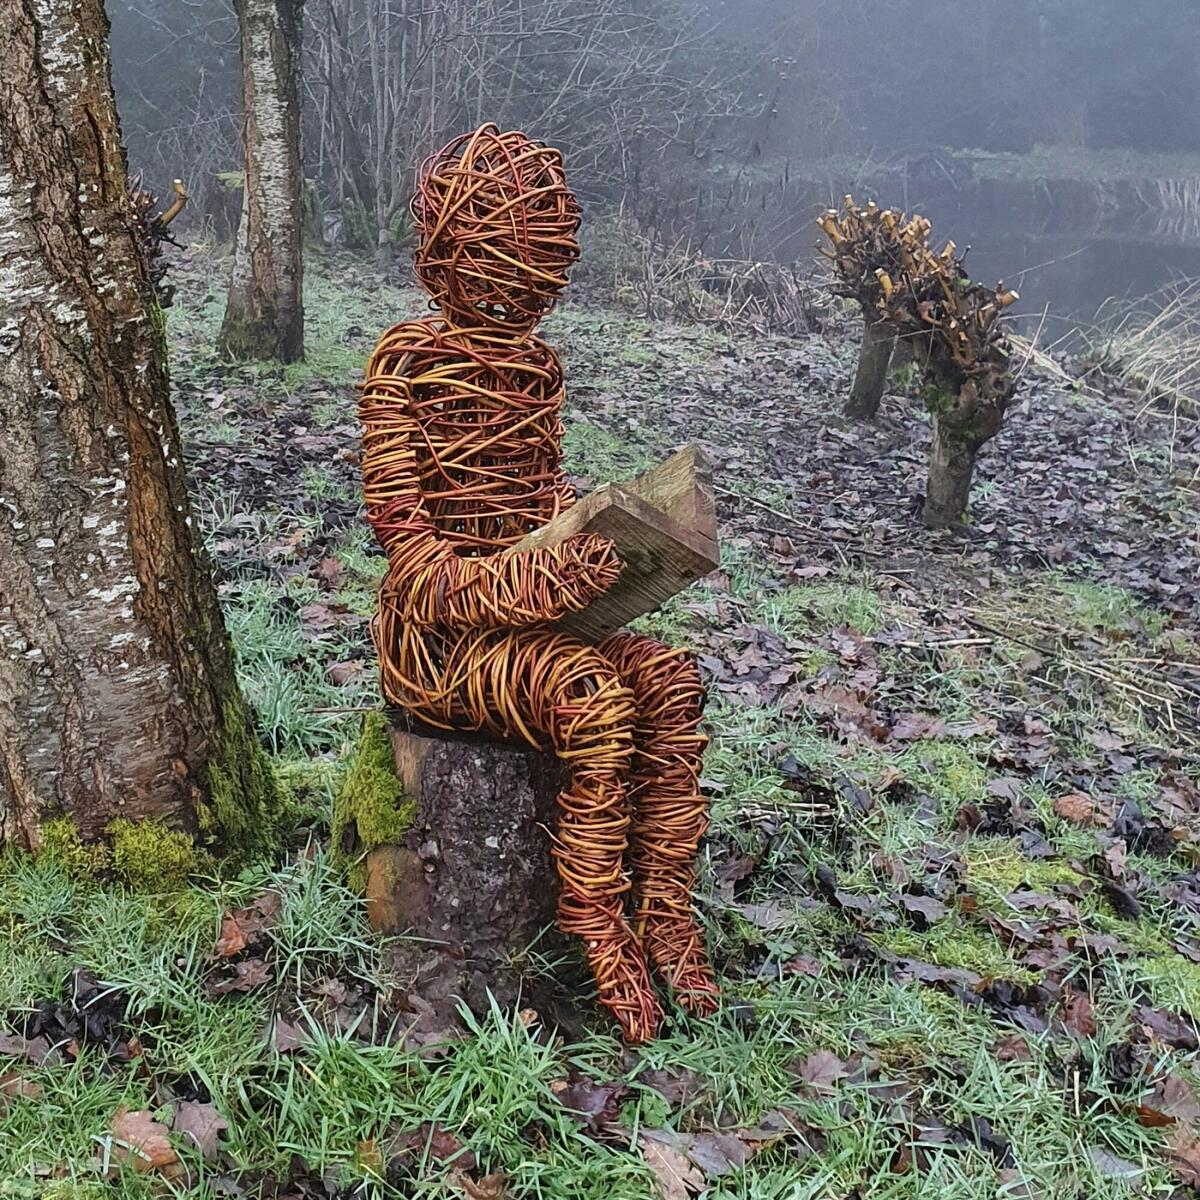 Willow man reading a book by the pond